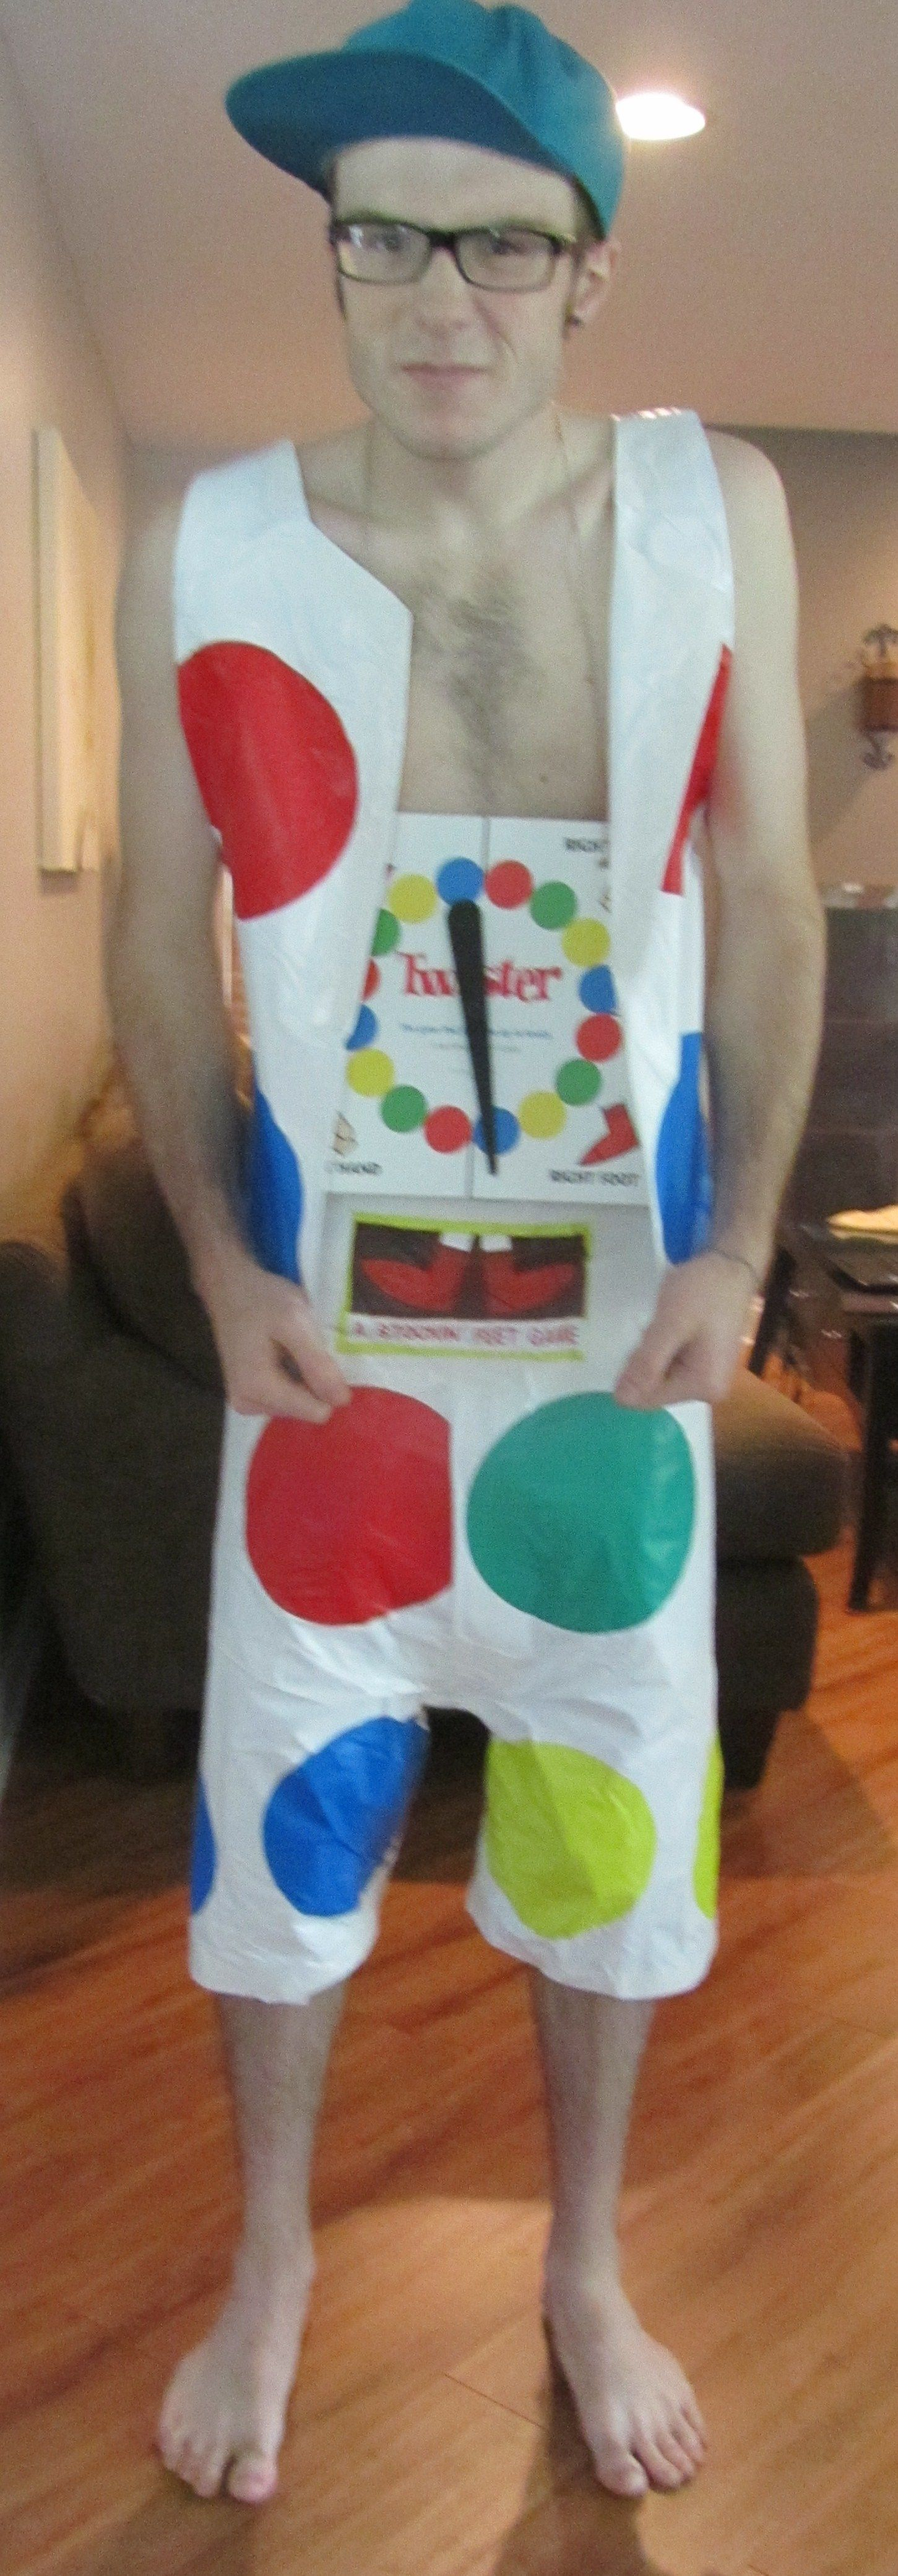 College Party Halloween Costumes Guys : college, party, halloween, costumes, Twister, Party, (anything, Clothes, Party), Great, Costume., White, Du…, Costumes,, Halloween, Costumes